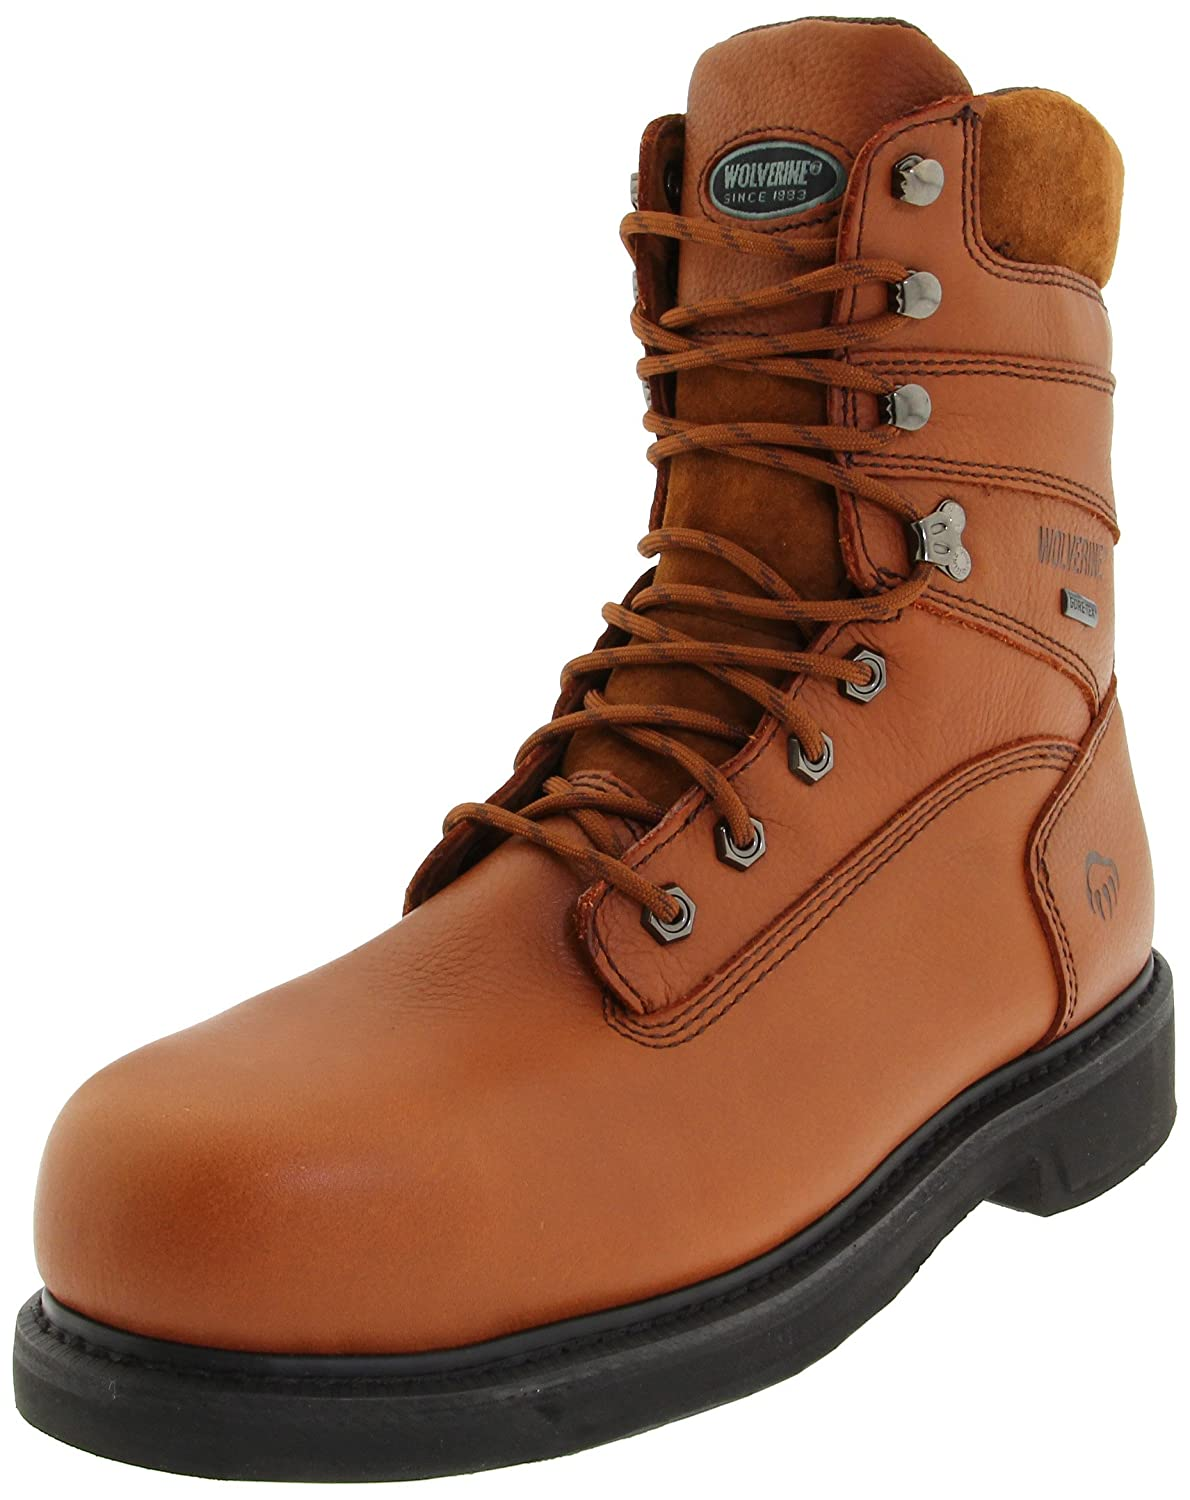 rocky mens boots extralarge mobilite toe comforter steel safety waterproof work boot comfortable shoes